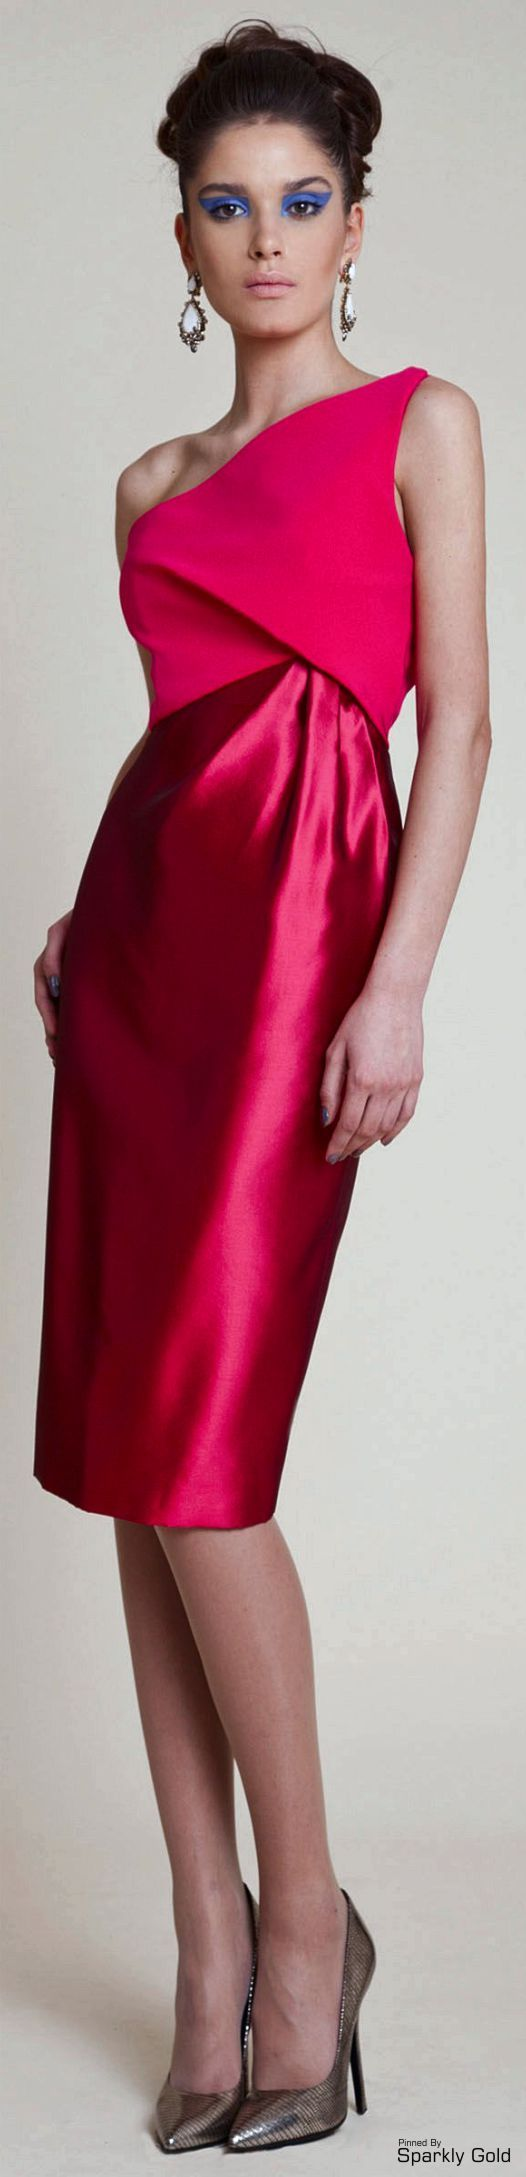 women fashion outfit clothing style apparel @roressclothes closet ideas Azzi & Osta S/S 2014